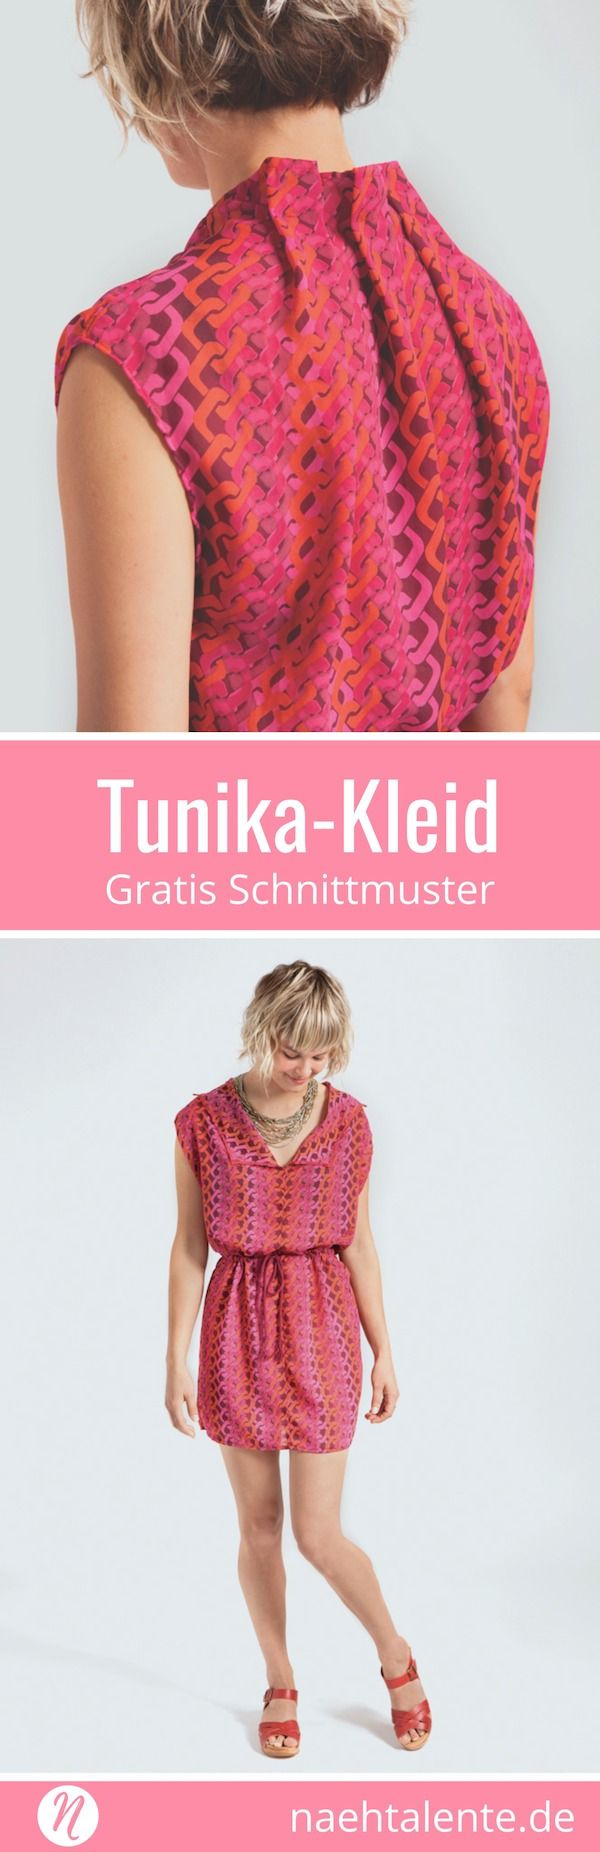 Einfaches Tunika-Kleid | DIY fashion, Sewing projects and Sewing ...